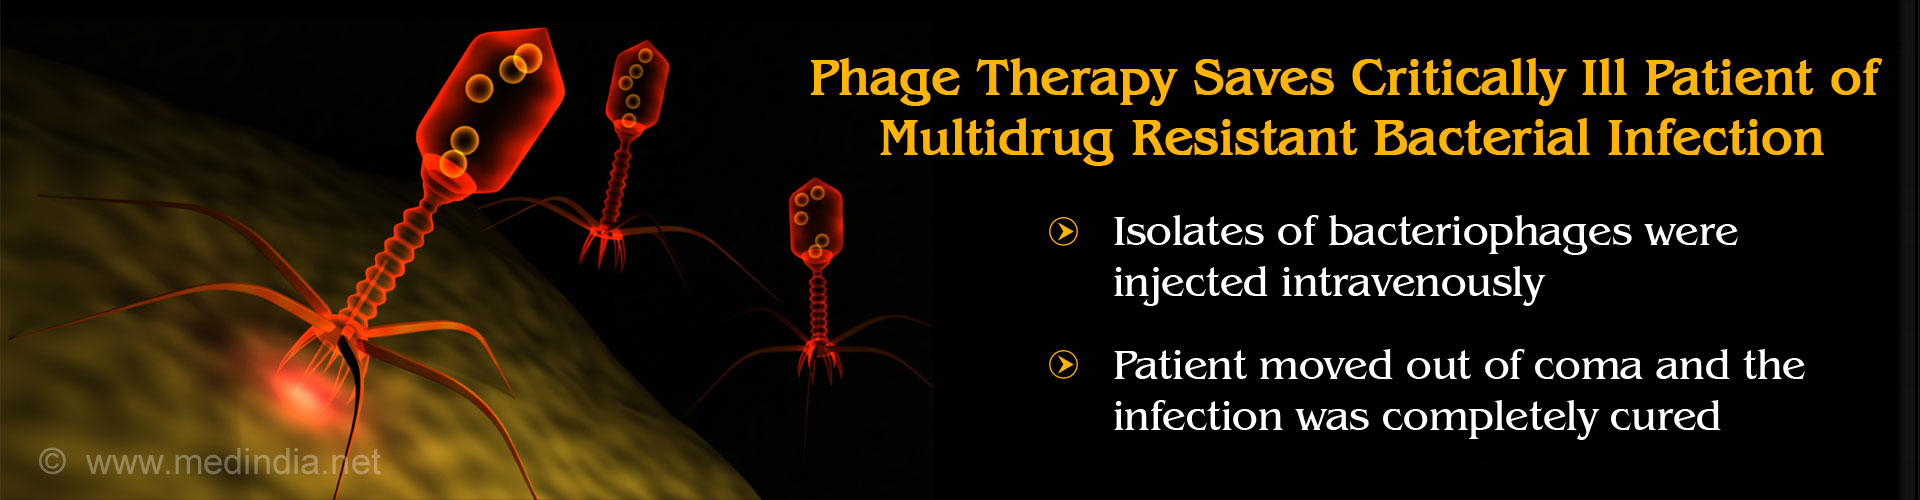 Phage Therapy Saves Patient With Multi-Drug Resistant Bacterial Infection